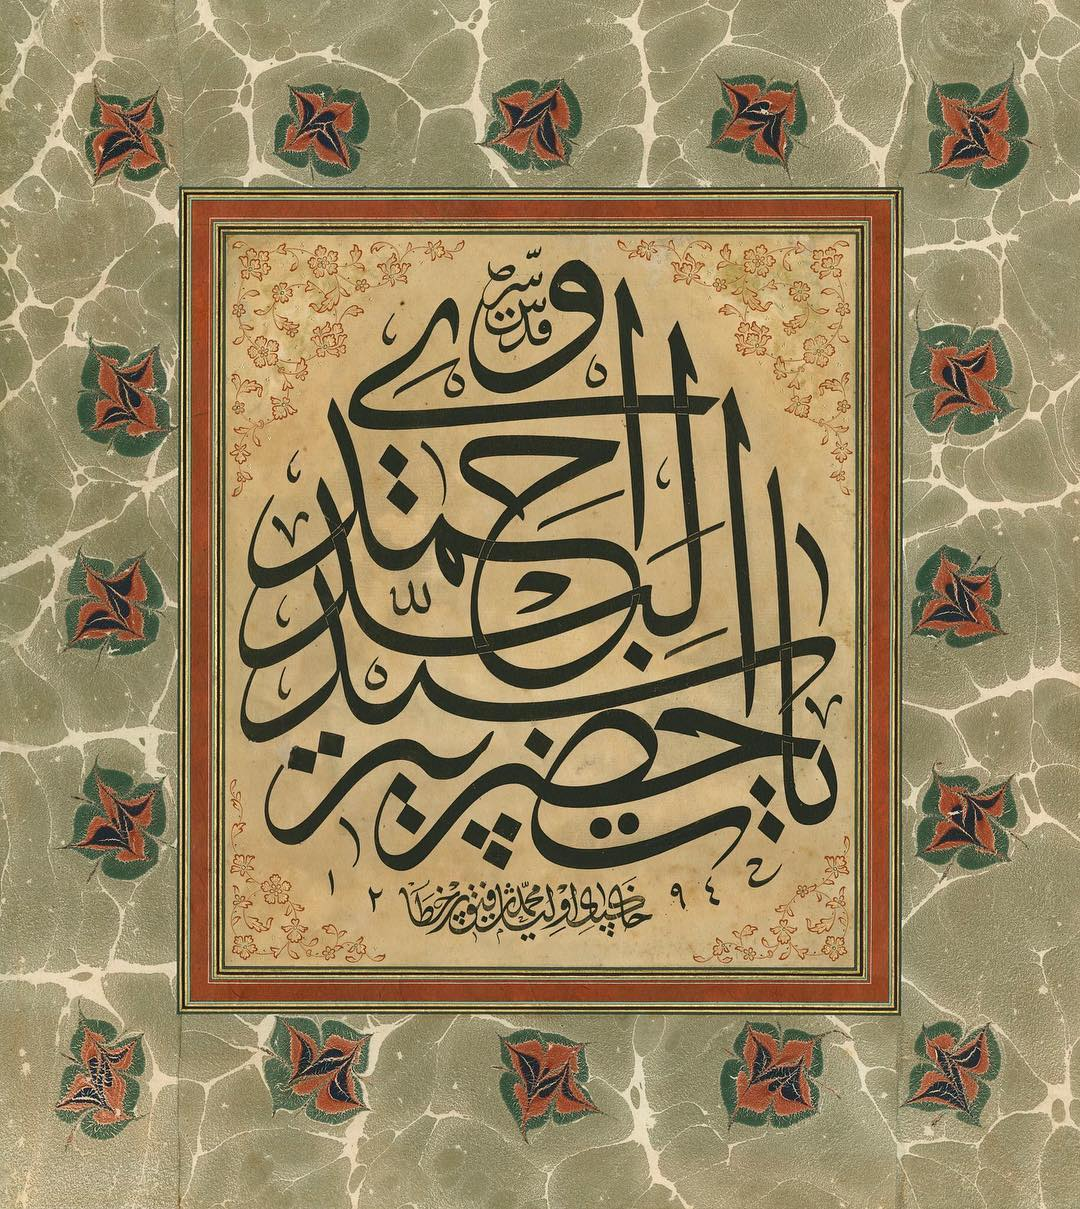 Apk Website For Arabic Calligraphy – يا حضرت پير سيد احمد البدوي قدس سره Yâ Hazreti Pîr Seyyid Ahmed el-Bedevî Kudd… 497